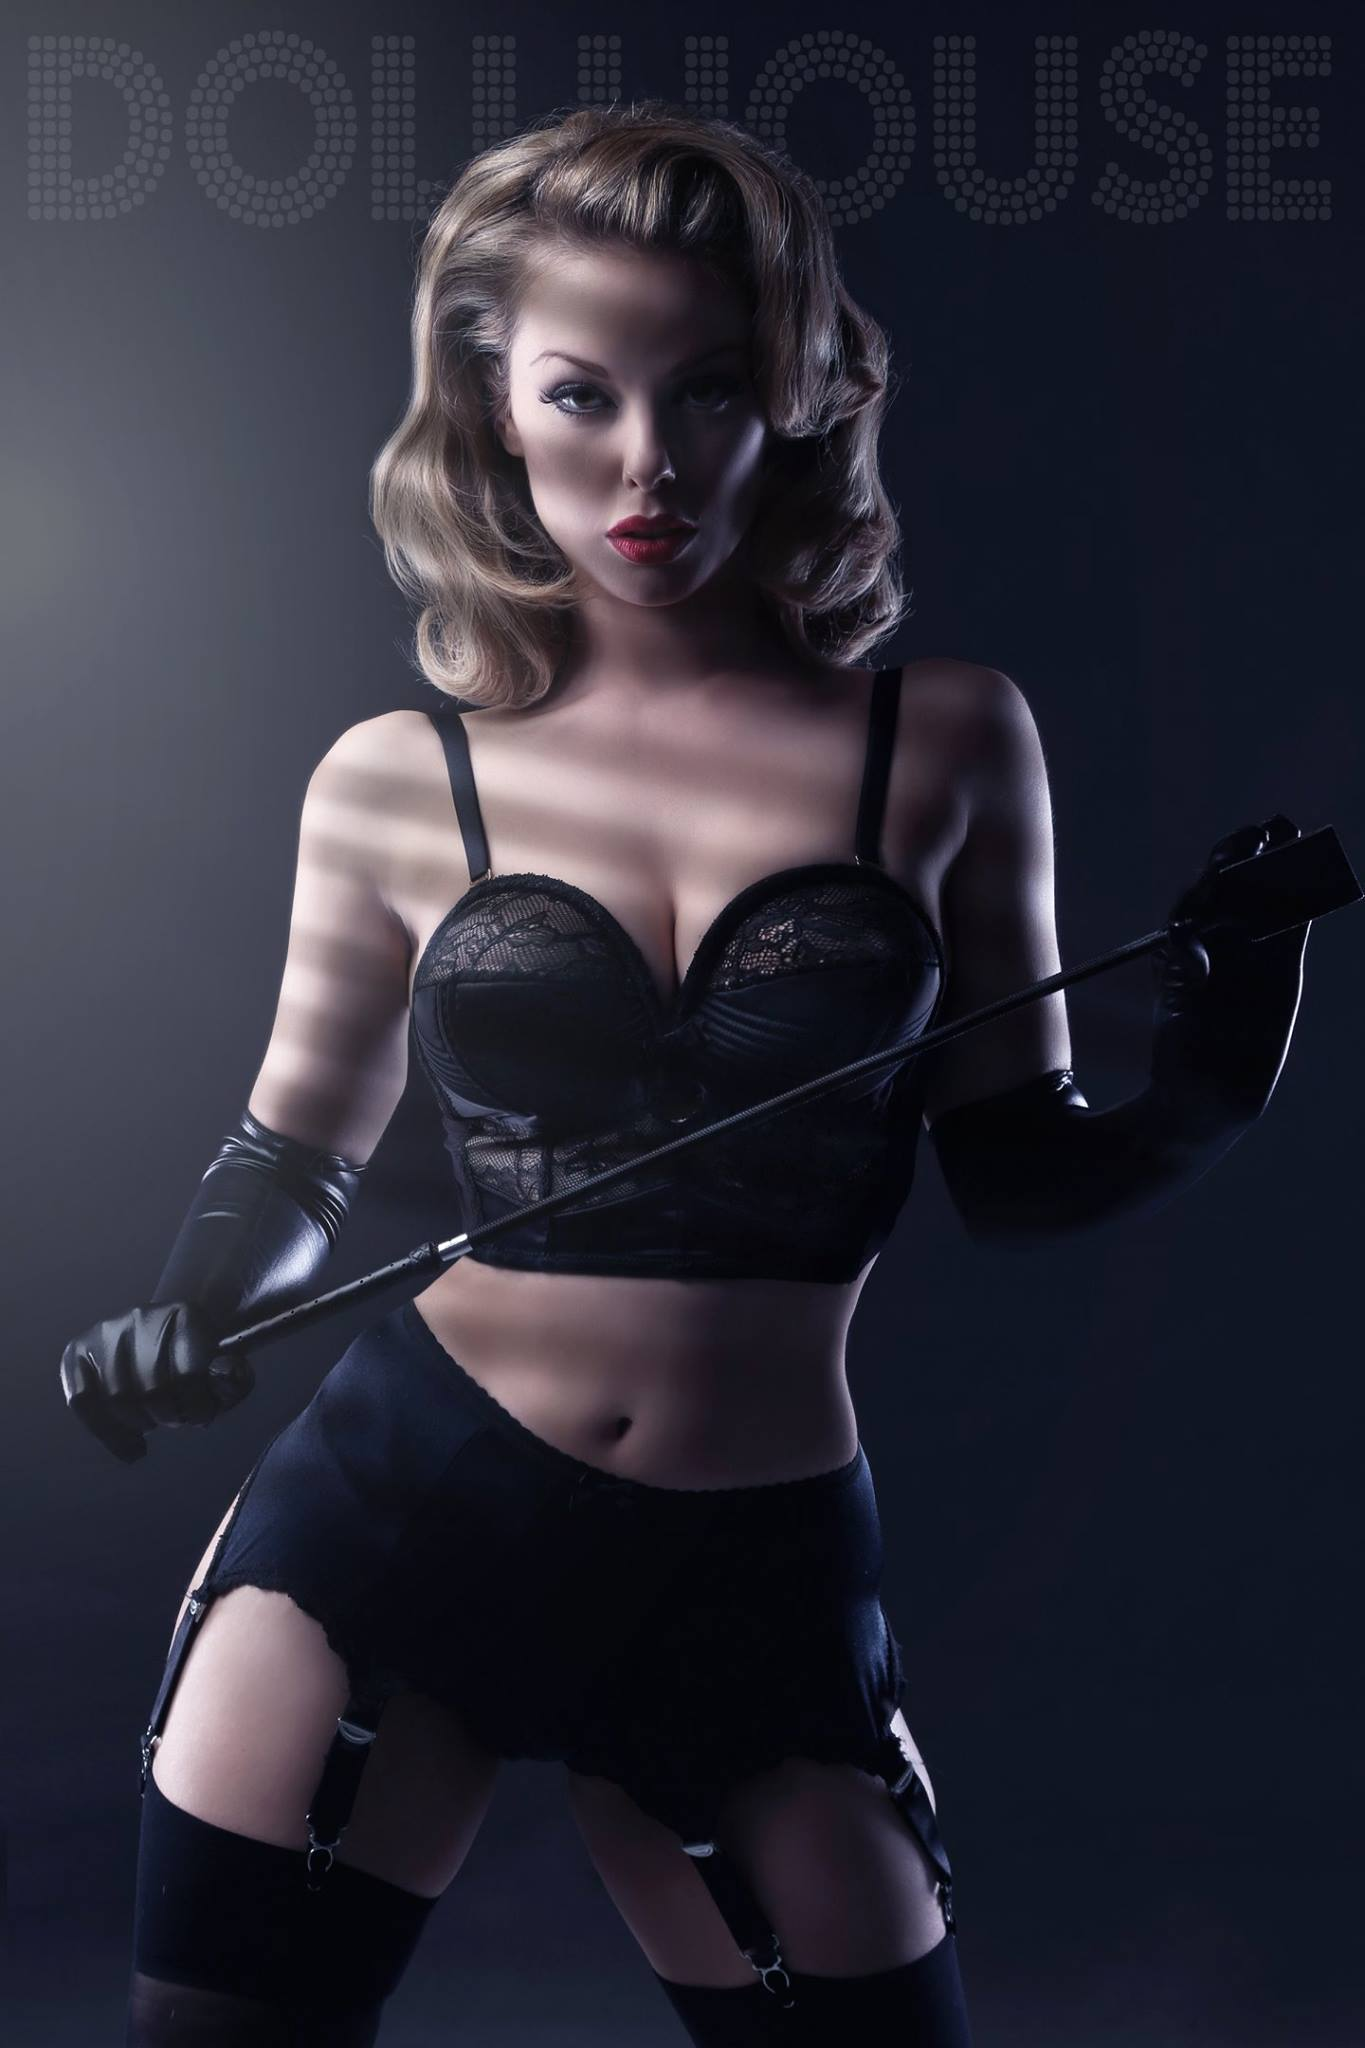 Heather Valentine Pin Up Model